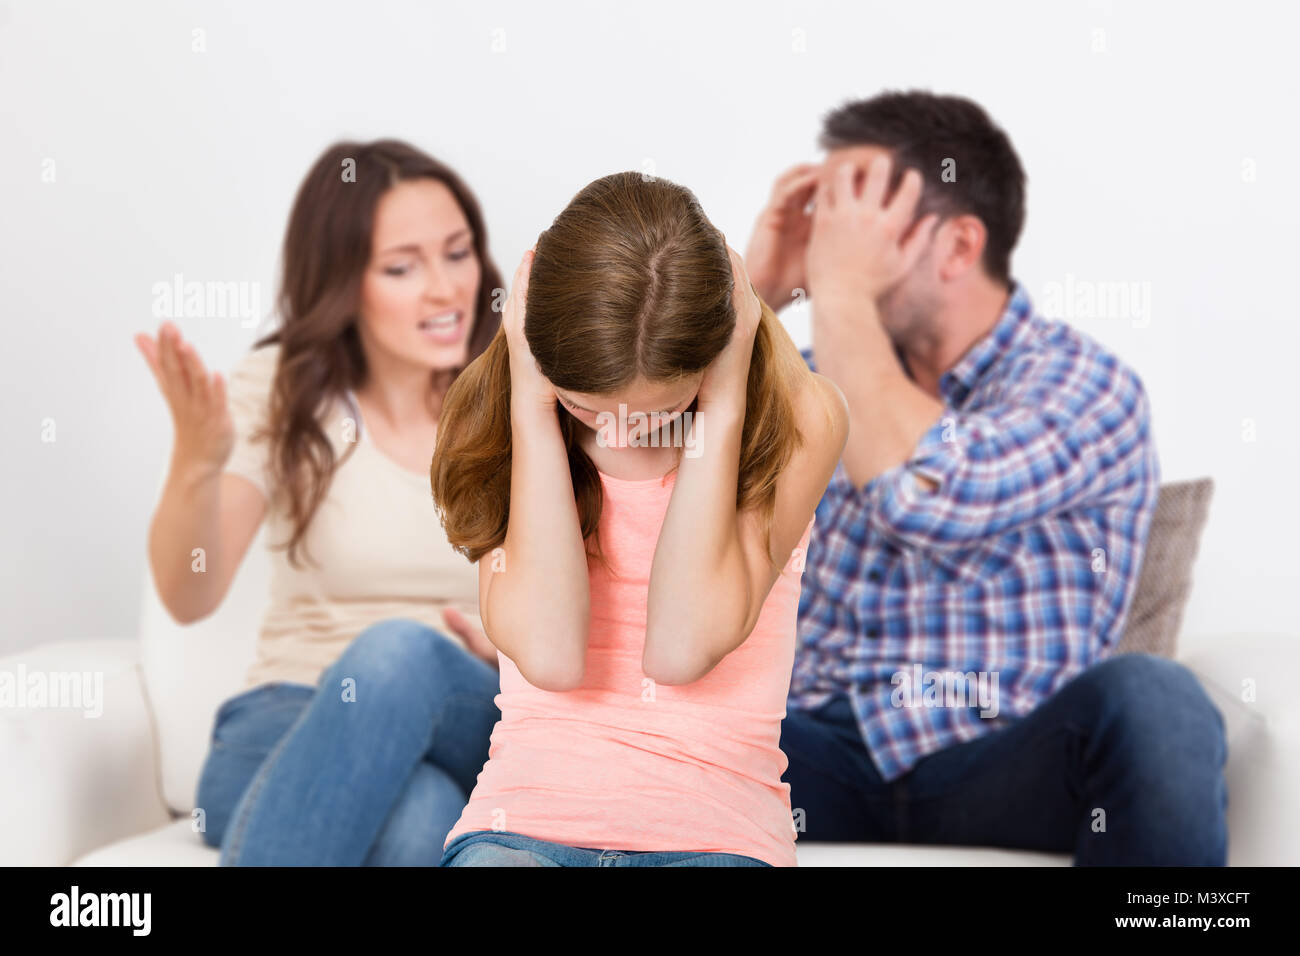 Parent Sitting On Sofa Quarreling Loudly Behind Girl Covering Her Ears - Stock Image